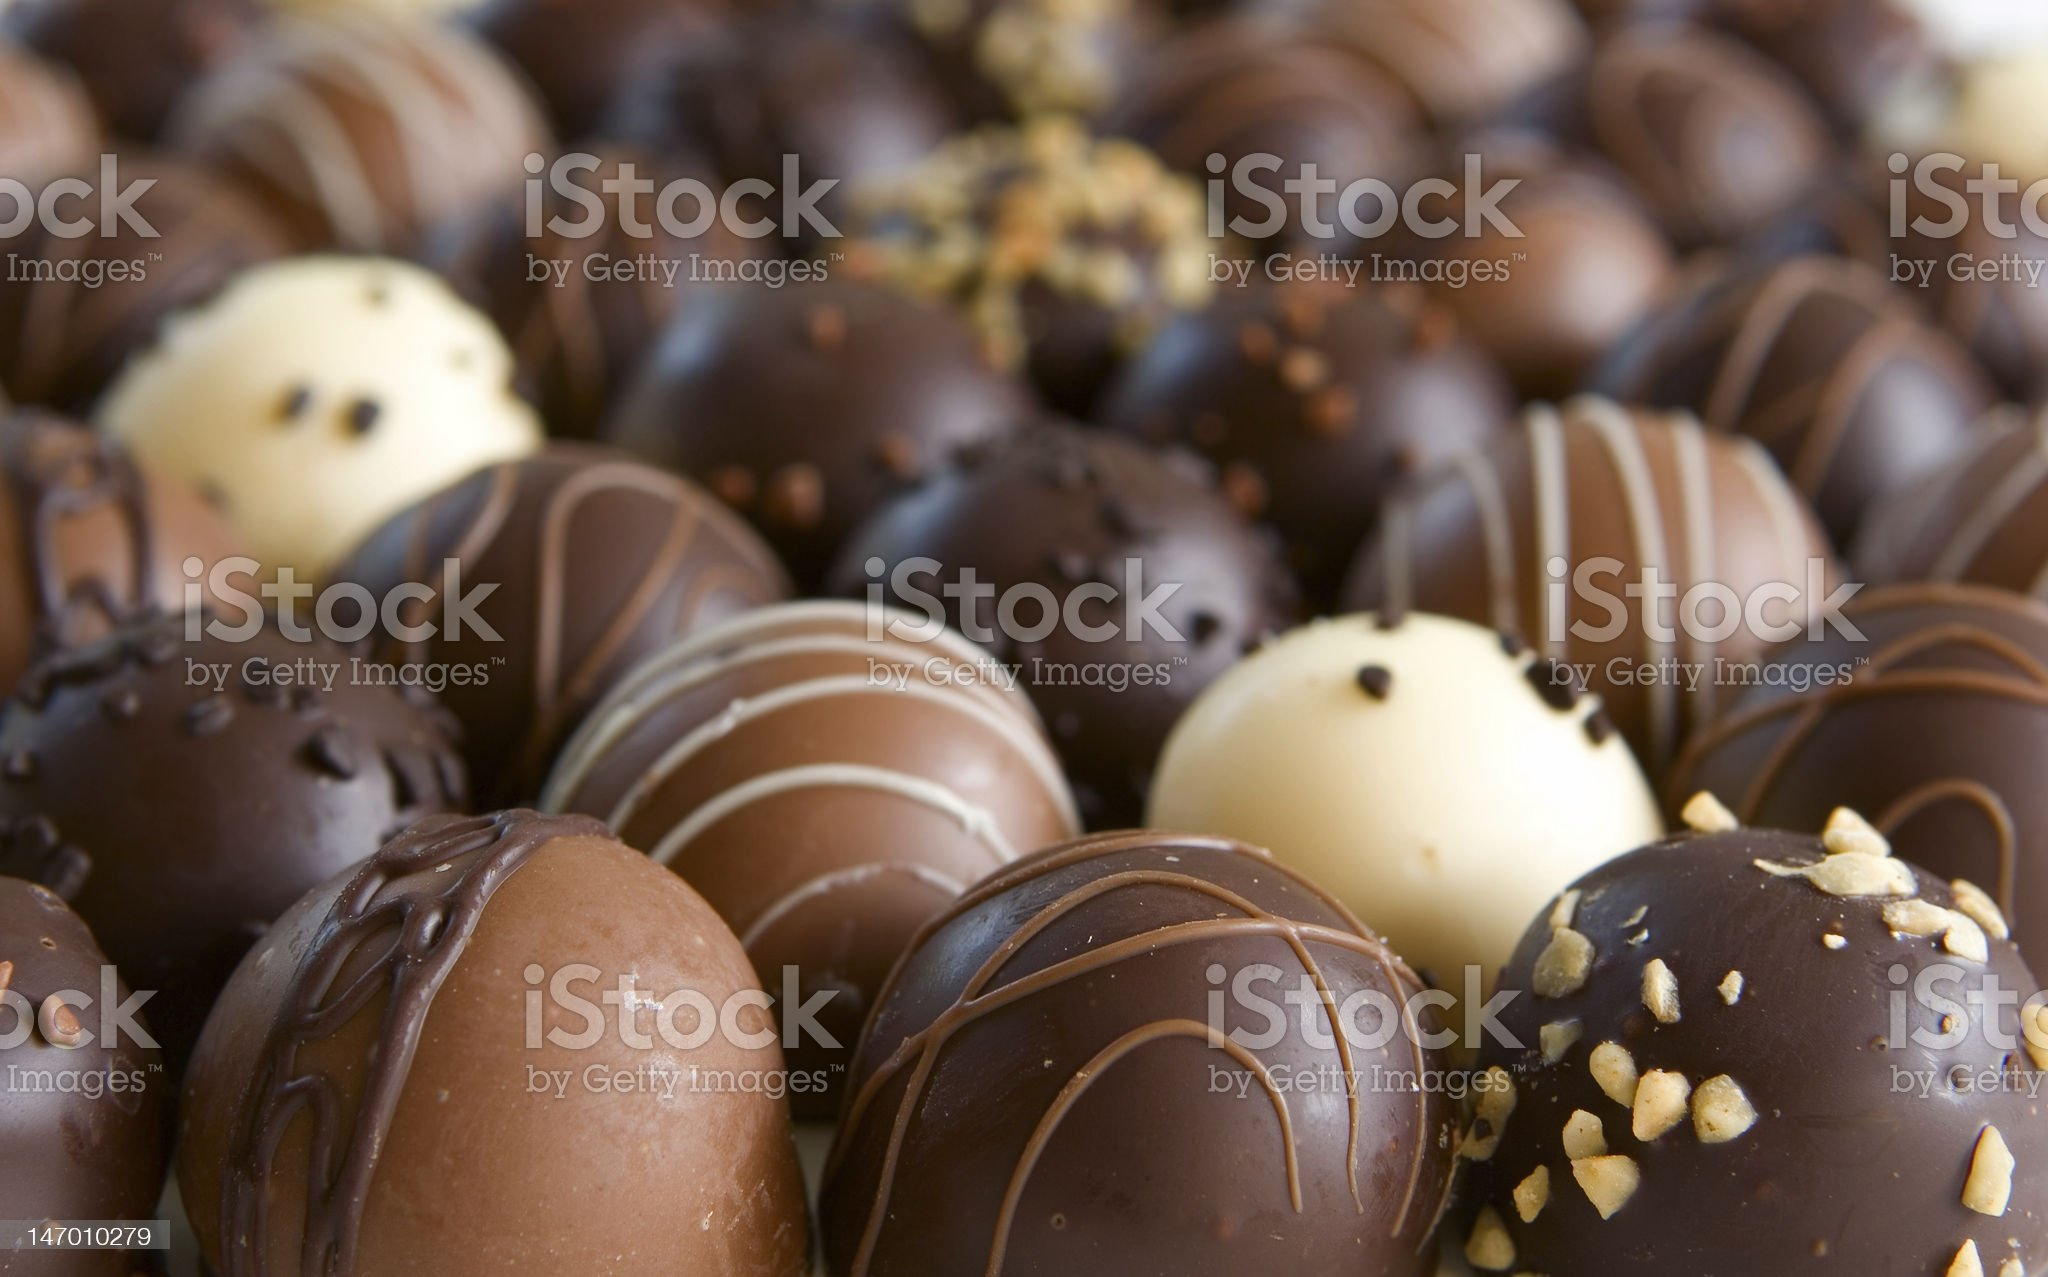 Several chocolate truffles for background image royalty-free stock photo